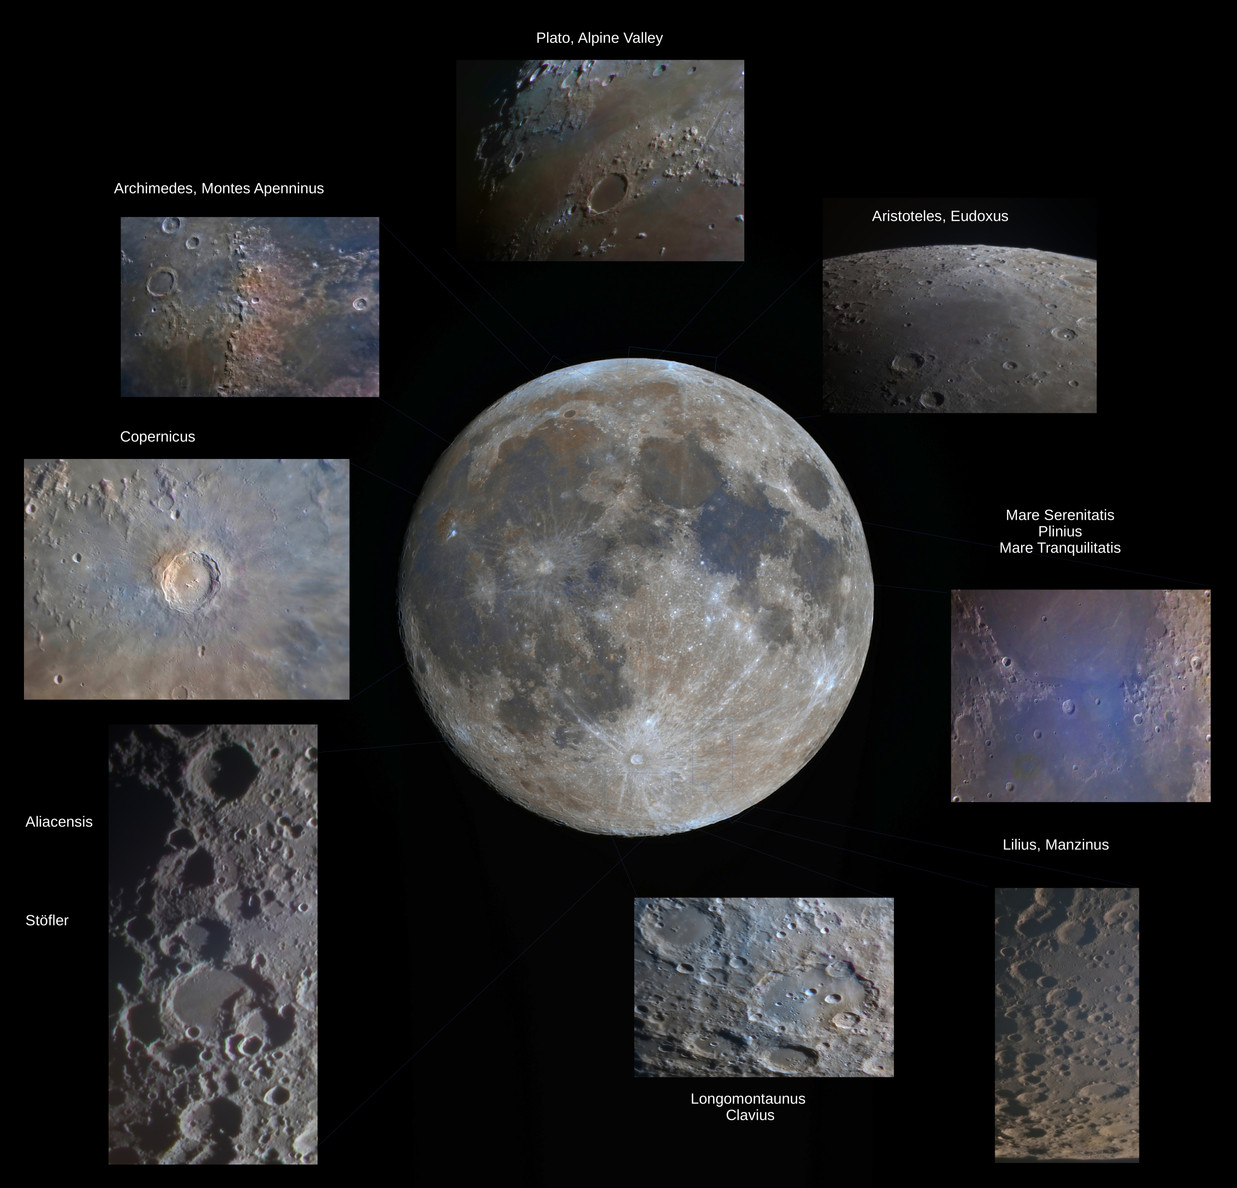 moon close up images: copernicus, aristoteles, Eudoxus, plato, clavius, alpine valley